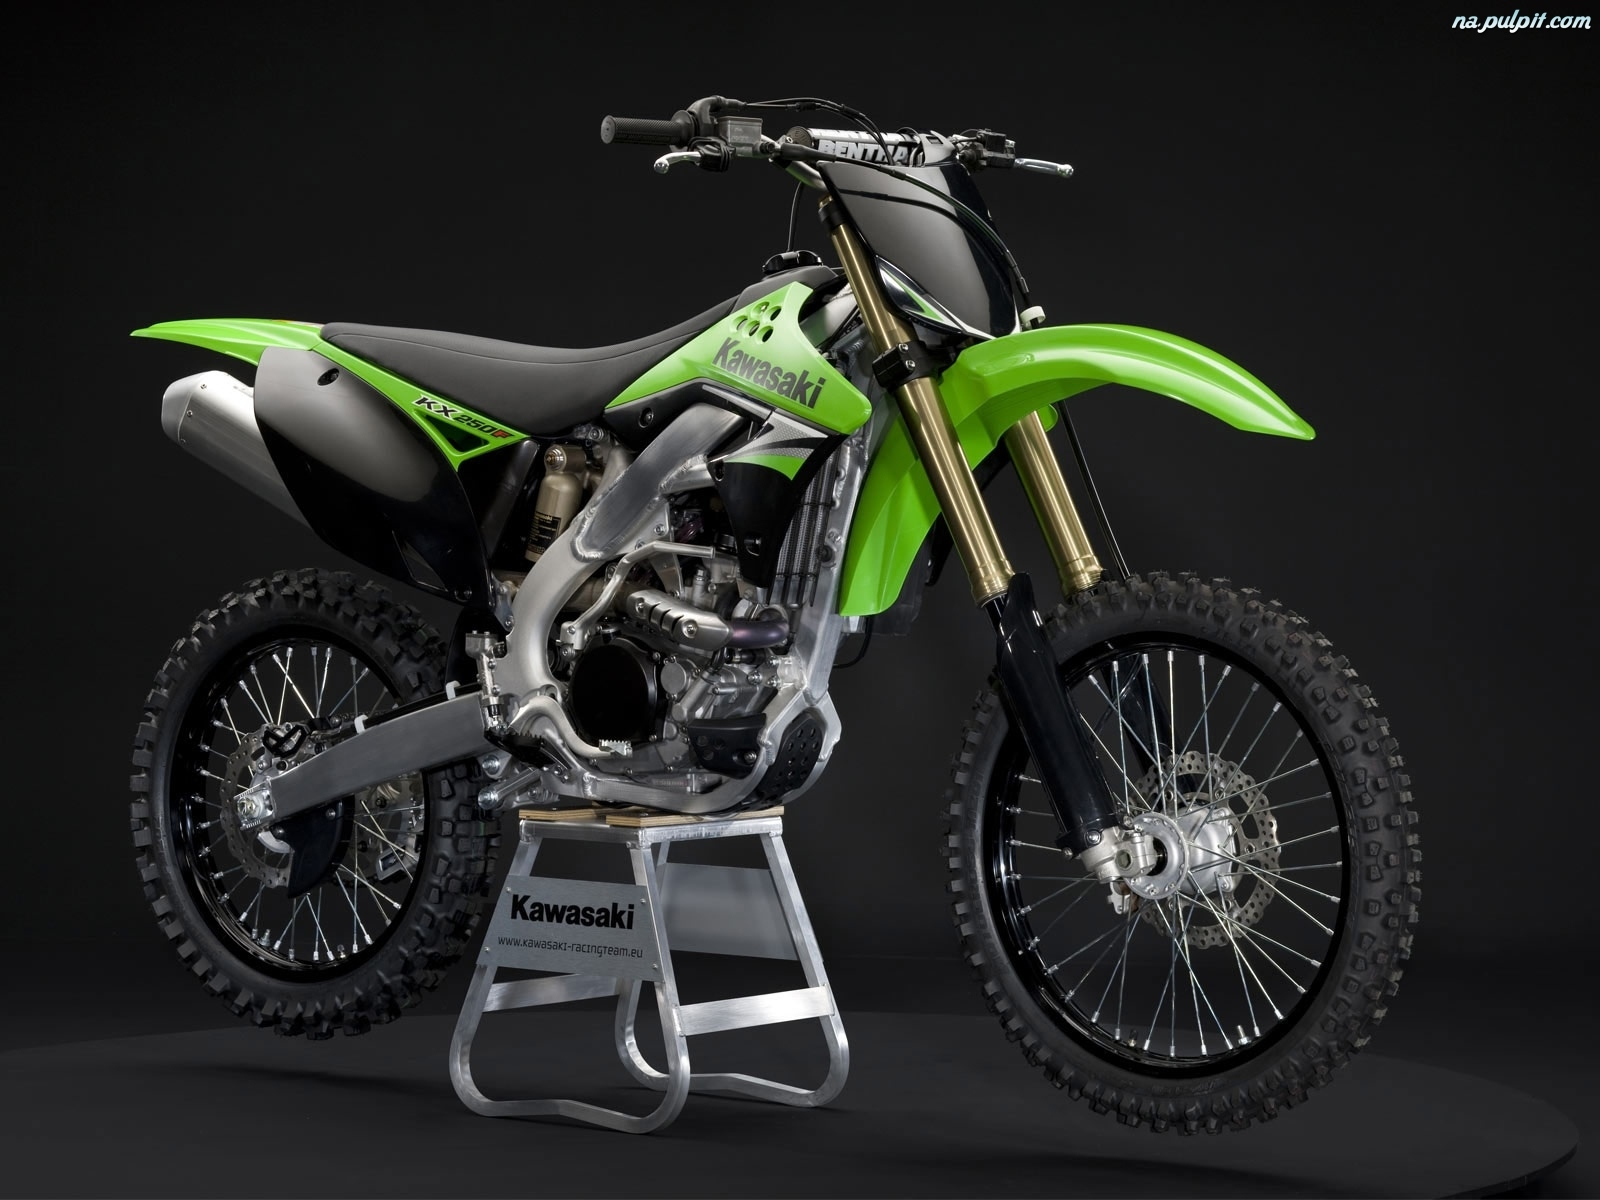 moto de cross kawasaki kx 450 f car interior design. Black Bedroom Furniture Sets. Home Design Ideas